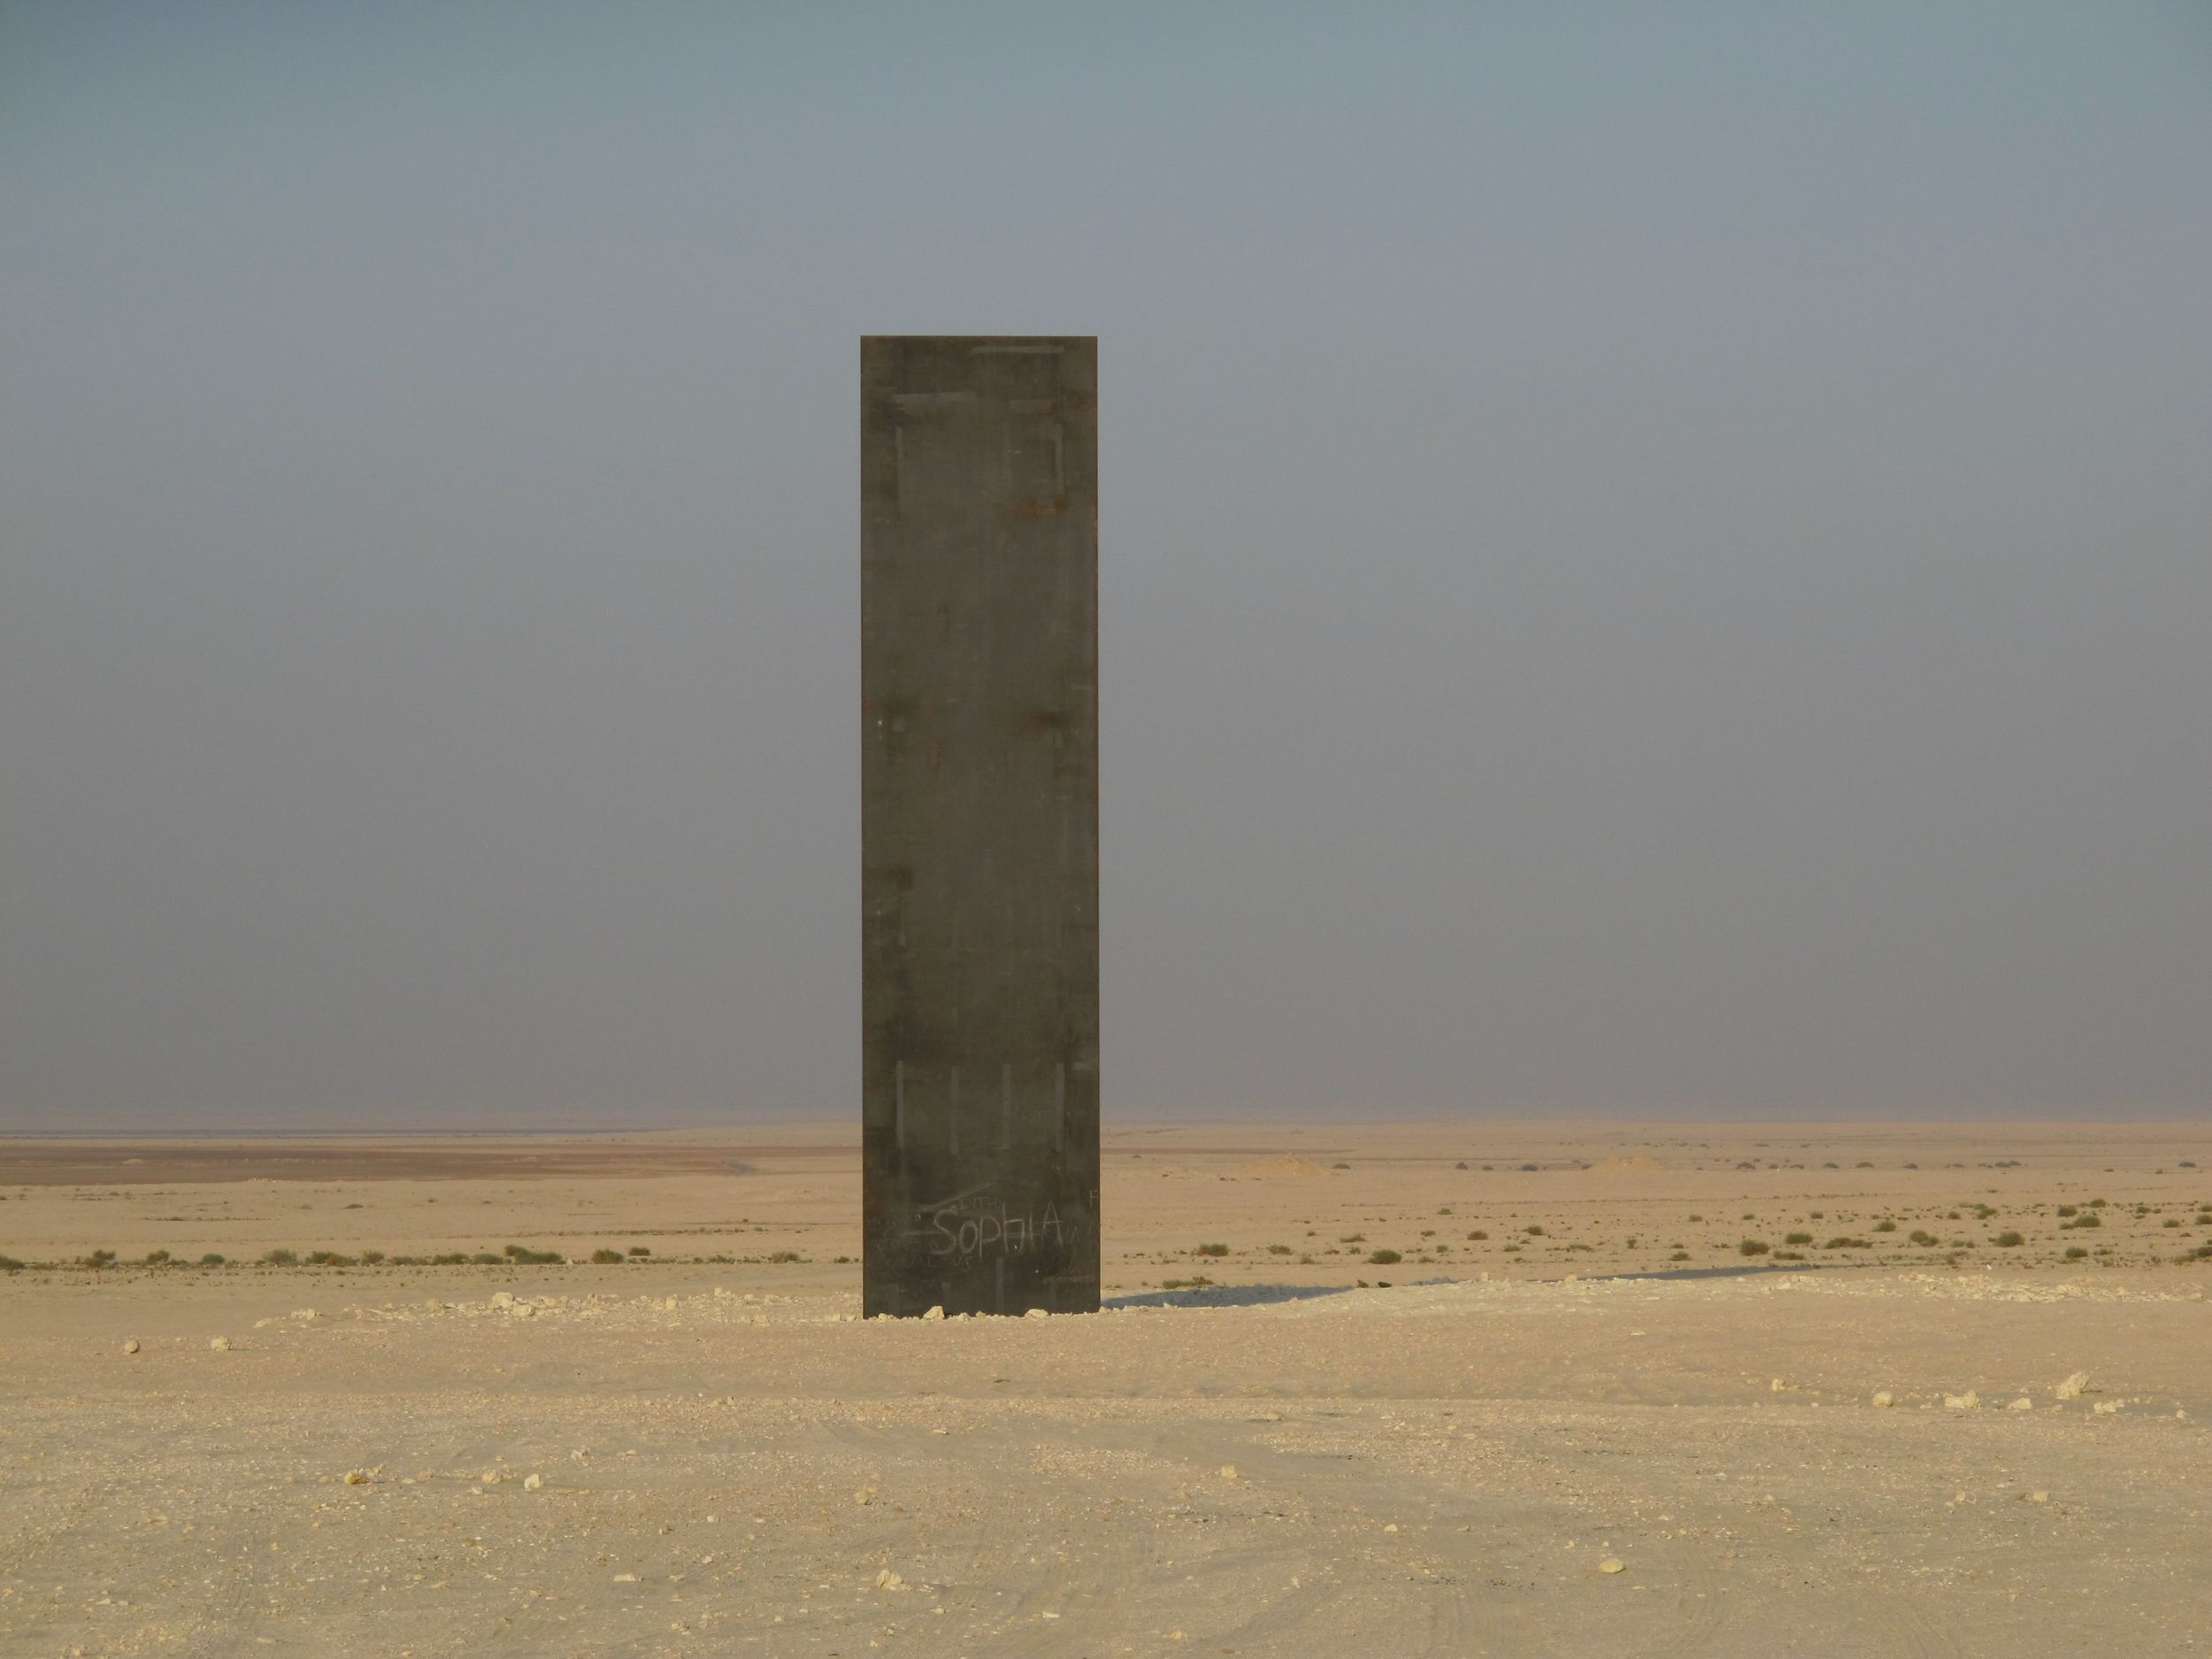 One of the four steel plates standing in a line in the Qatari desert